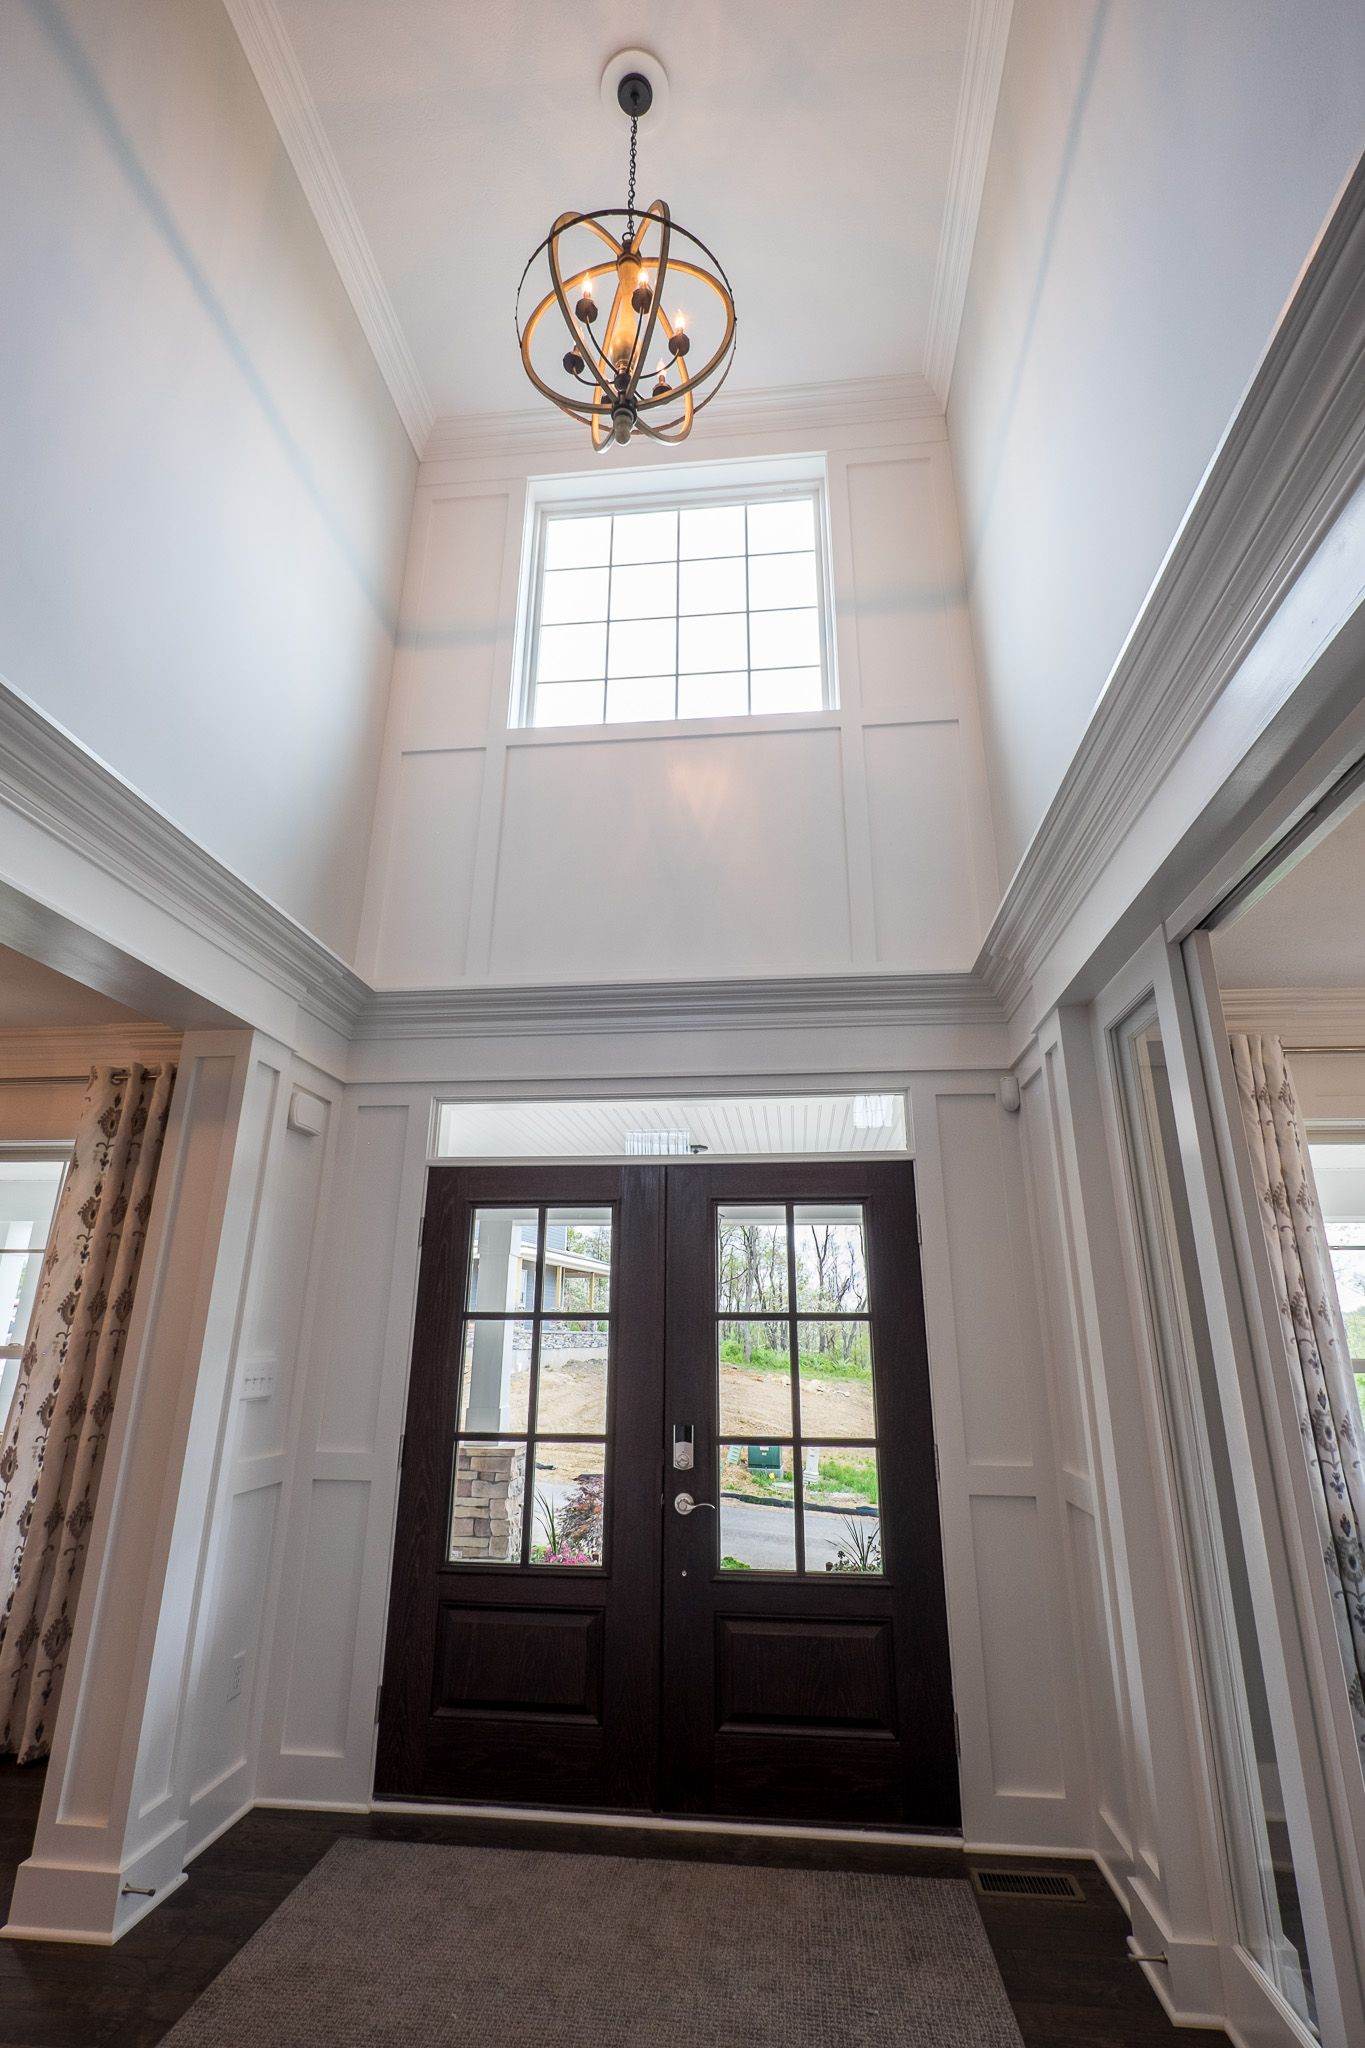 Story Foyer Window : Window and a orbital light fixture brighten the story